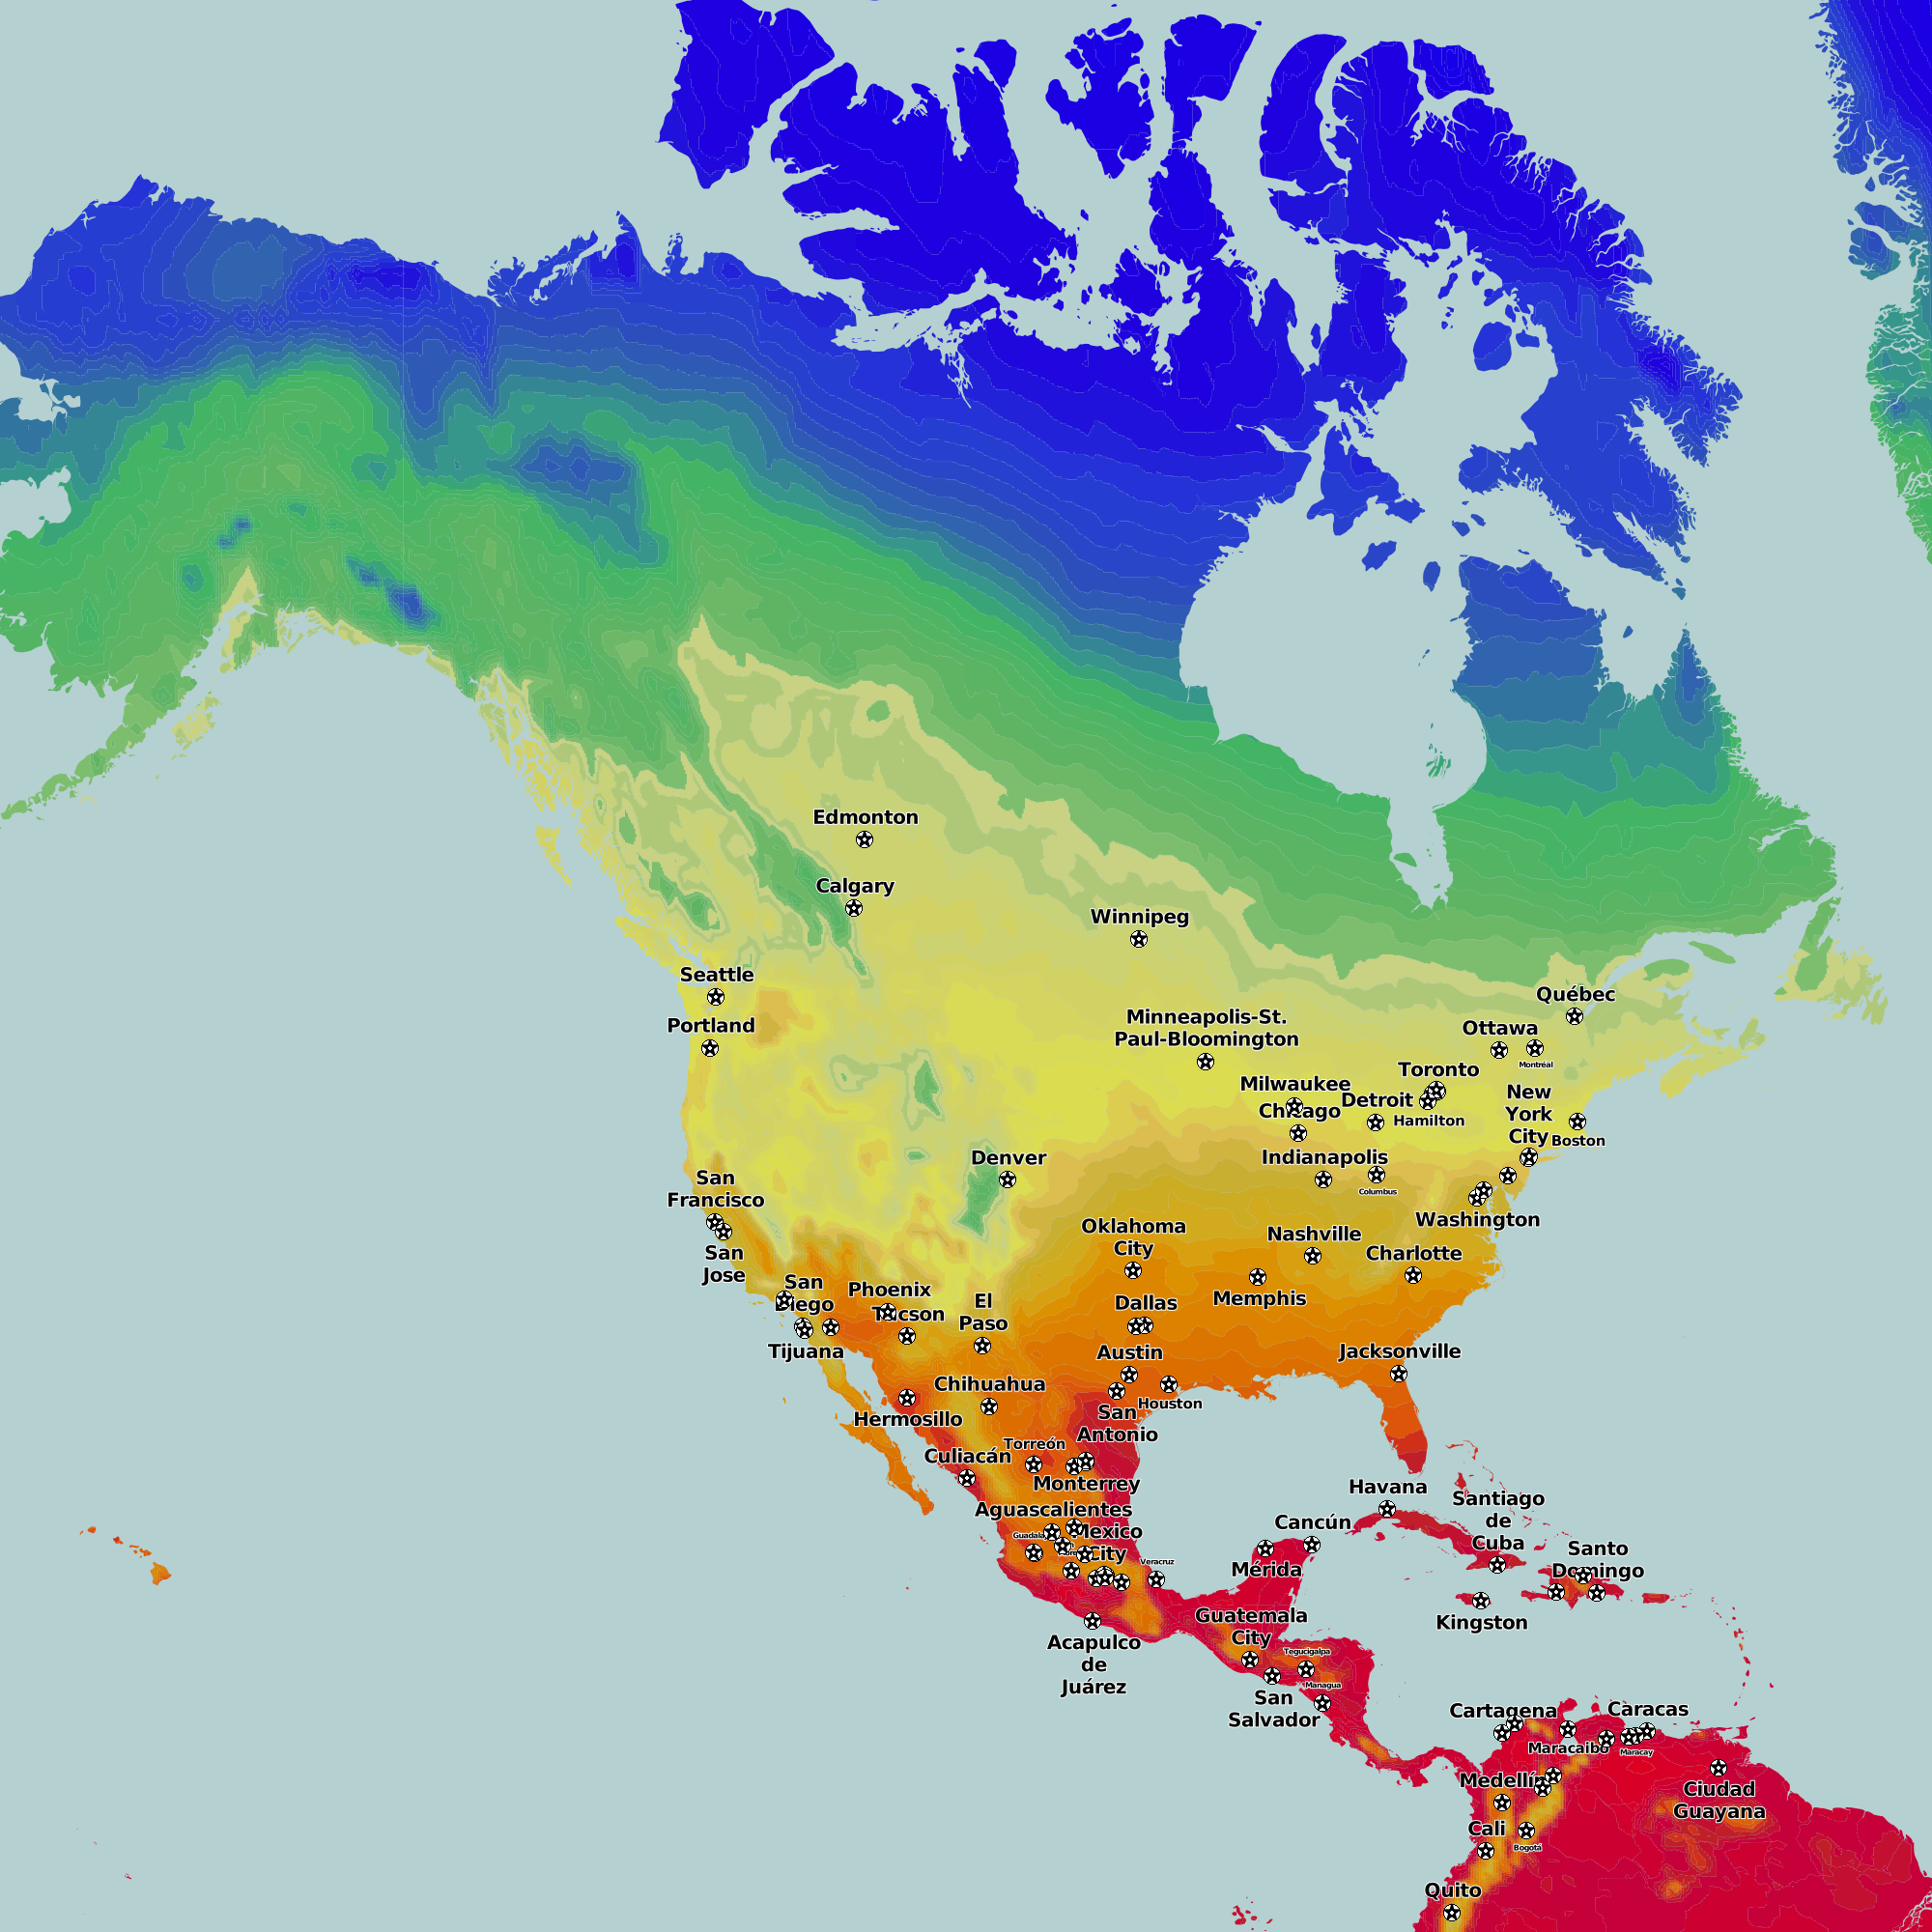 temperature map usa with Tuebersicht En on Morning Glory Pool additionally Made In Louisiana in addition Ti tsg60 en us moreover IL116753 in addition Ivory Coast.